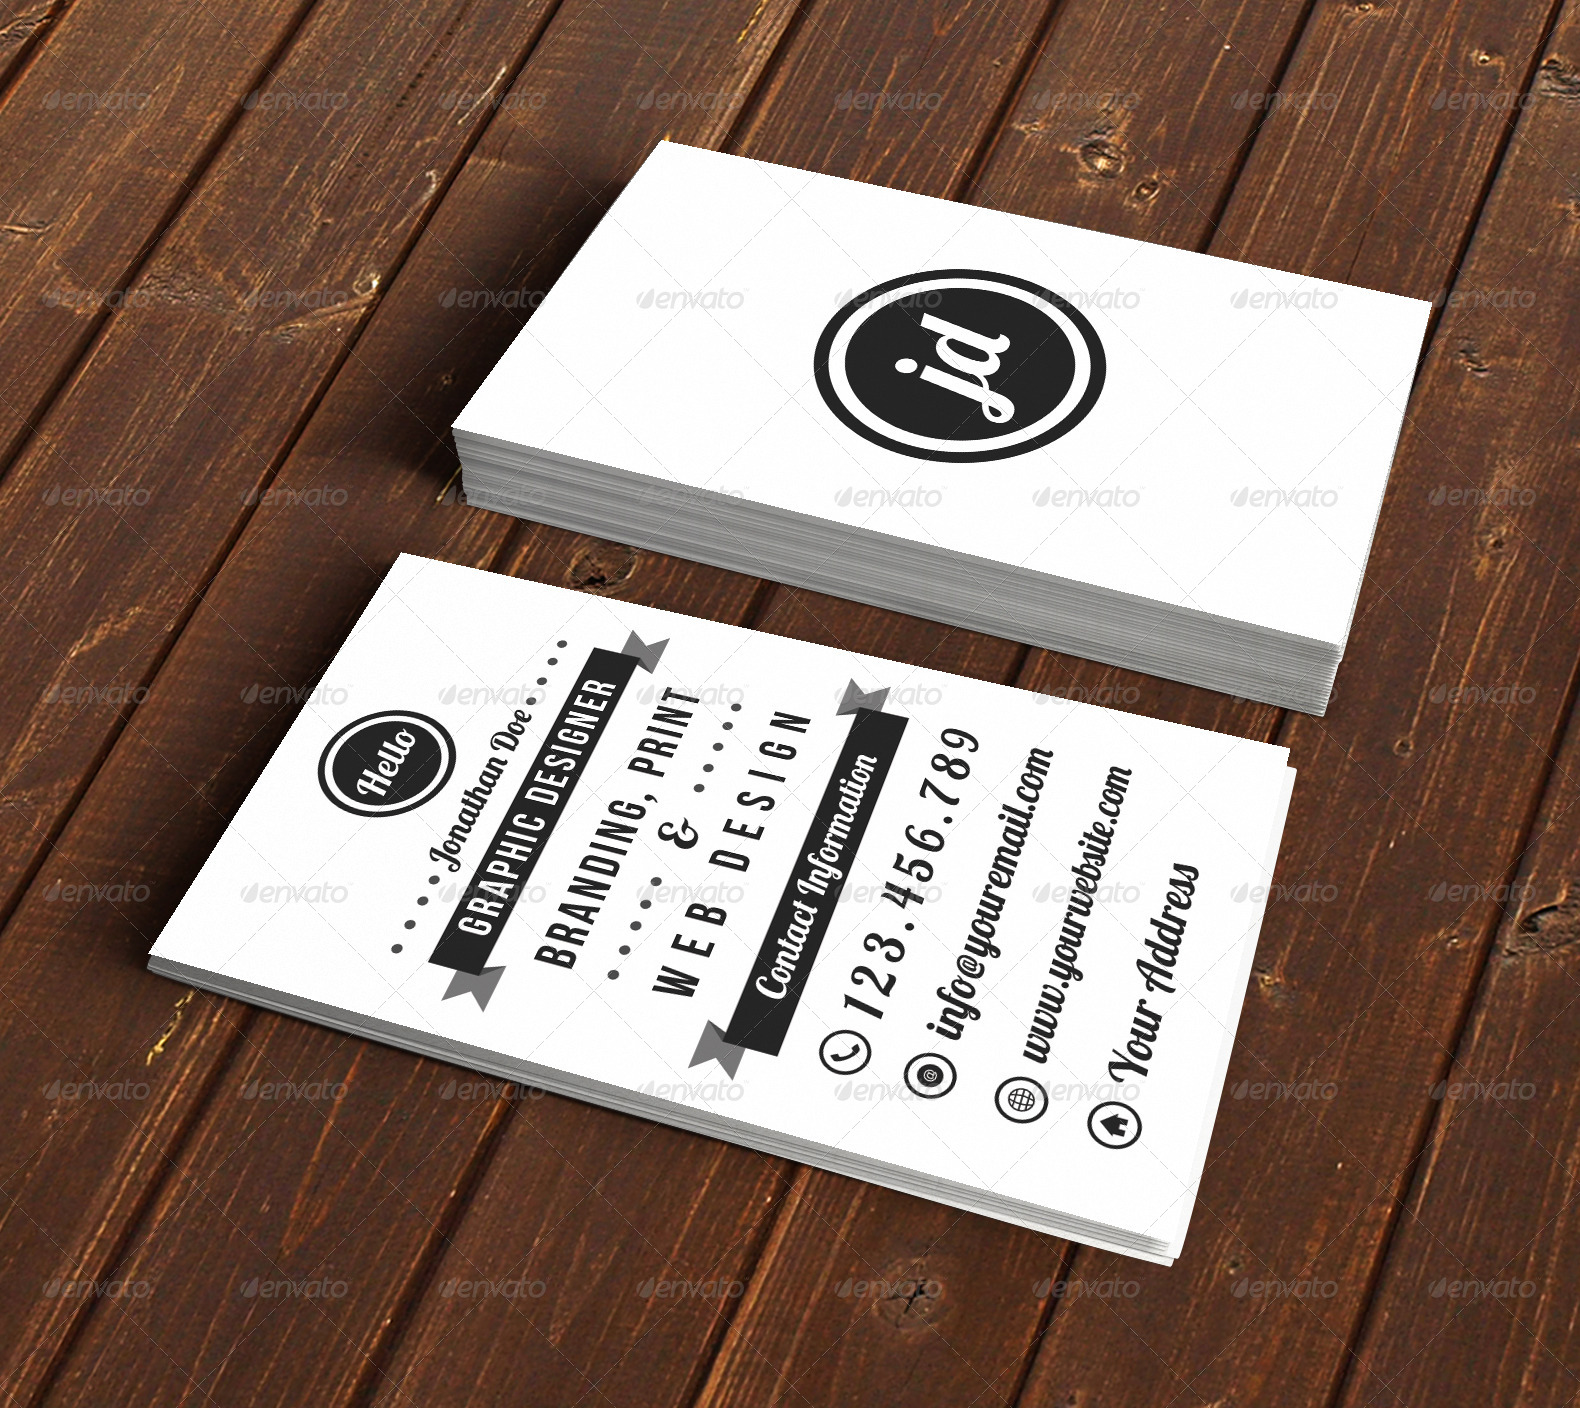 Awesome Typography Business Card Pictures Inspiration - Business ...